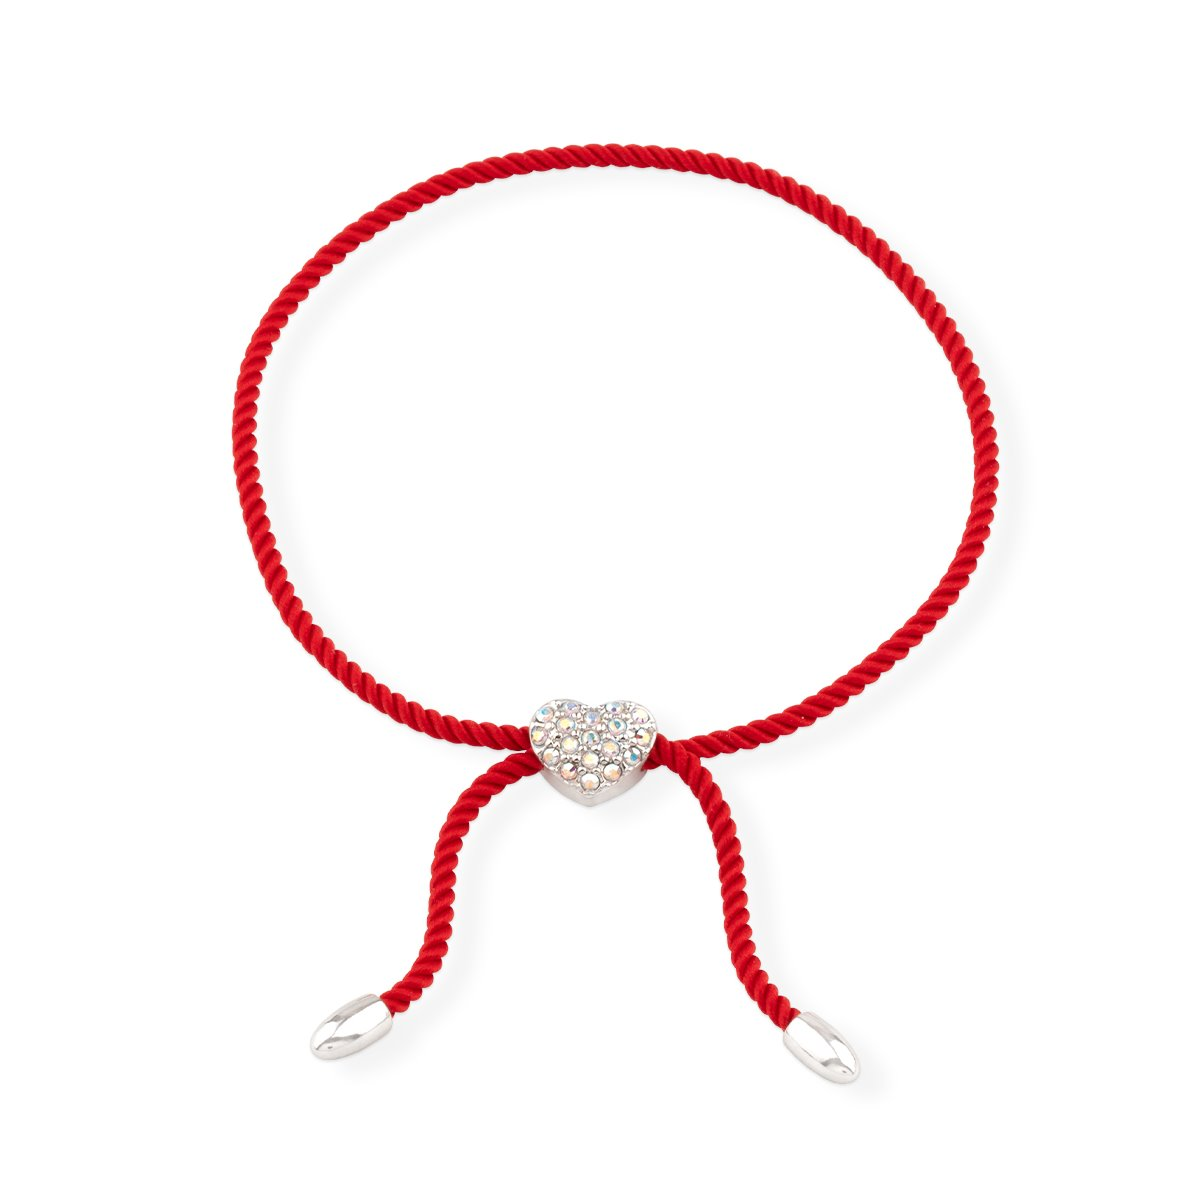 Wear Red Heart Bracelet forevercrystals